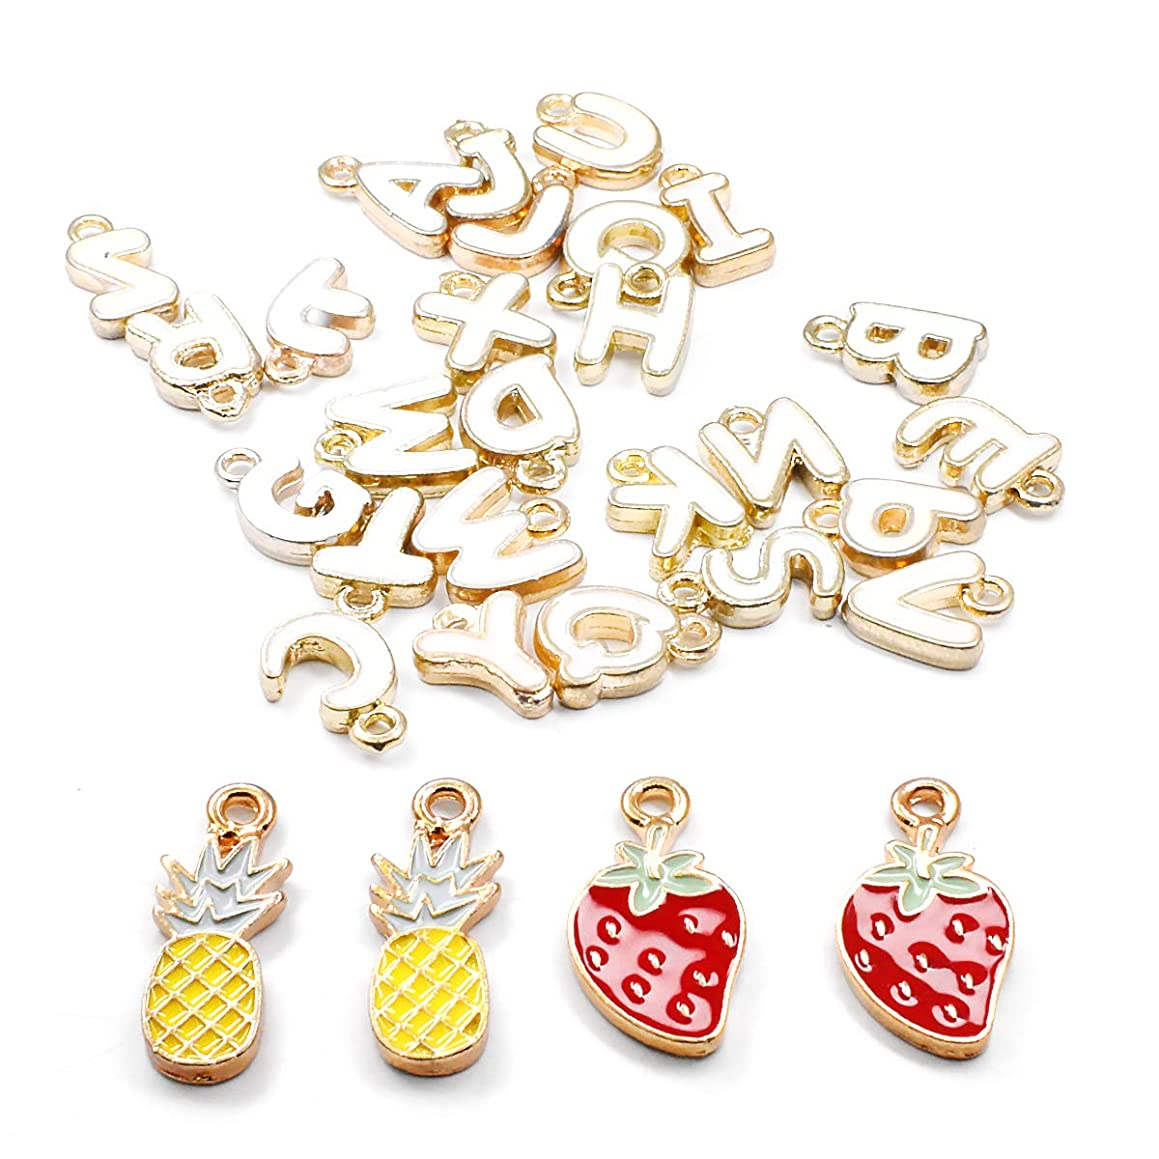 DIY Pendants for Jewelry Making, Airelon Premium Charm Pendants Earring Jewelry Sweater Chain Bracelet Band Decorative Unicorn and 26 Letter Design Colorful Mixed DIY Pendants Set (#F)